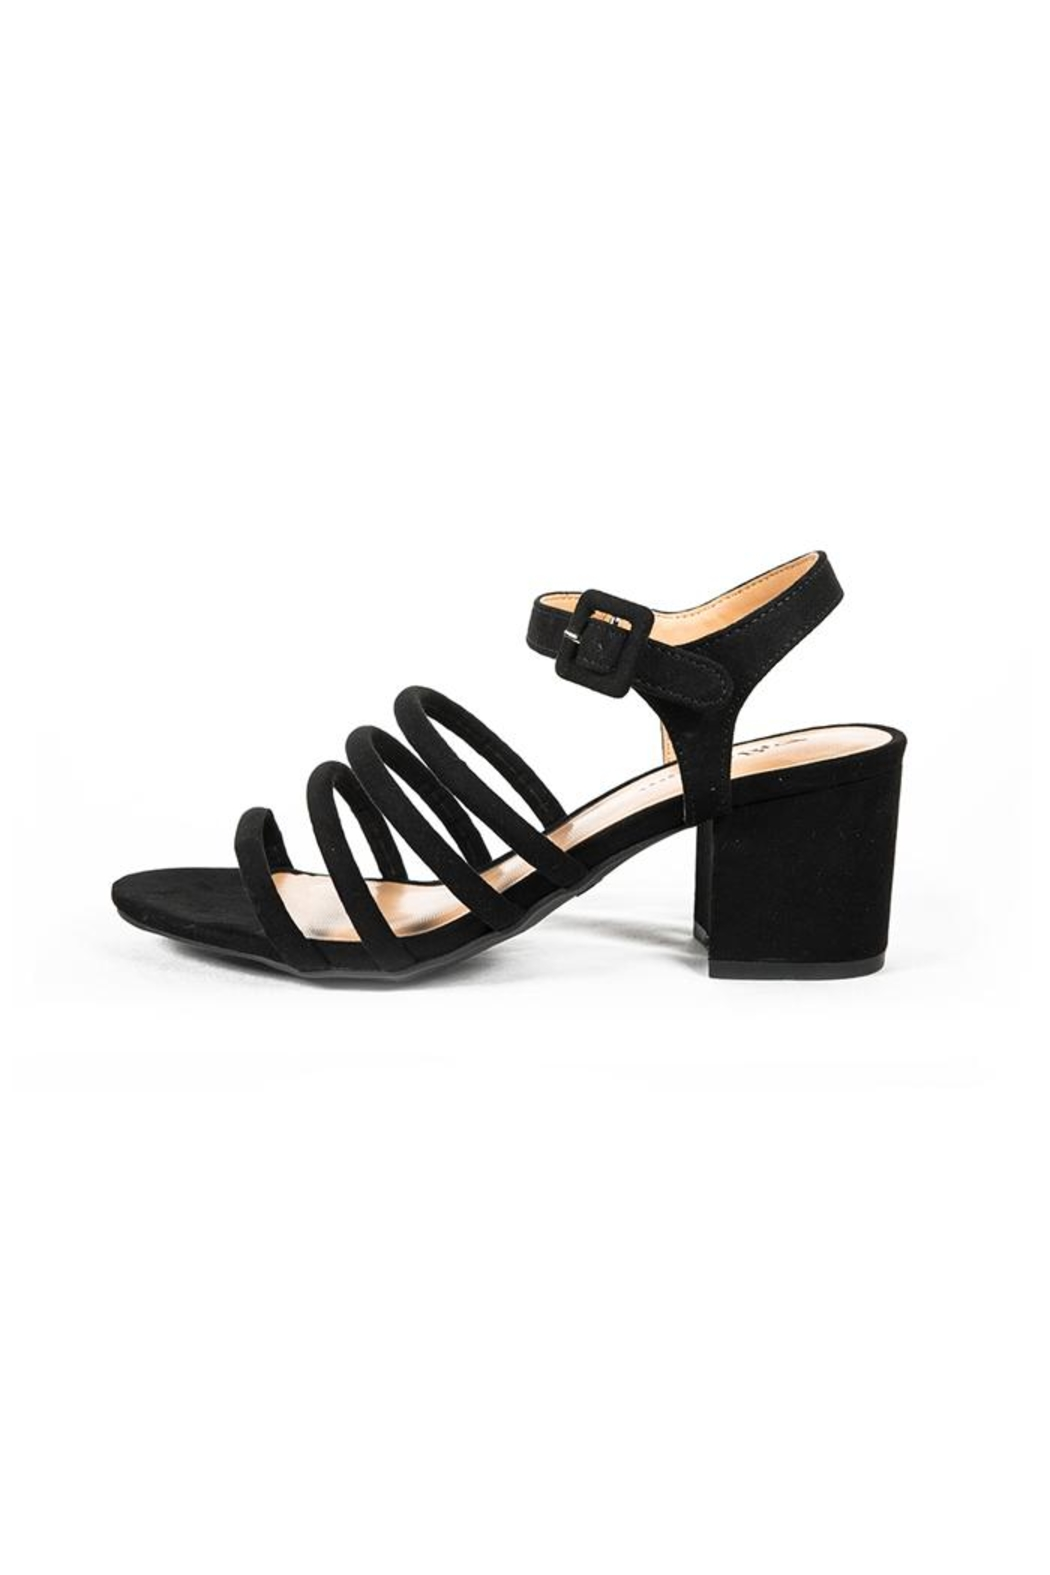 3abdc96aea2 Details about ZIGI SOHO Womens gladys Open Toe Casual Strappy Sandals